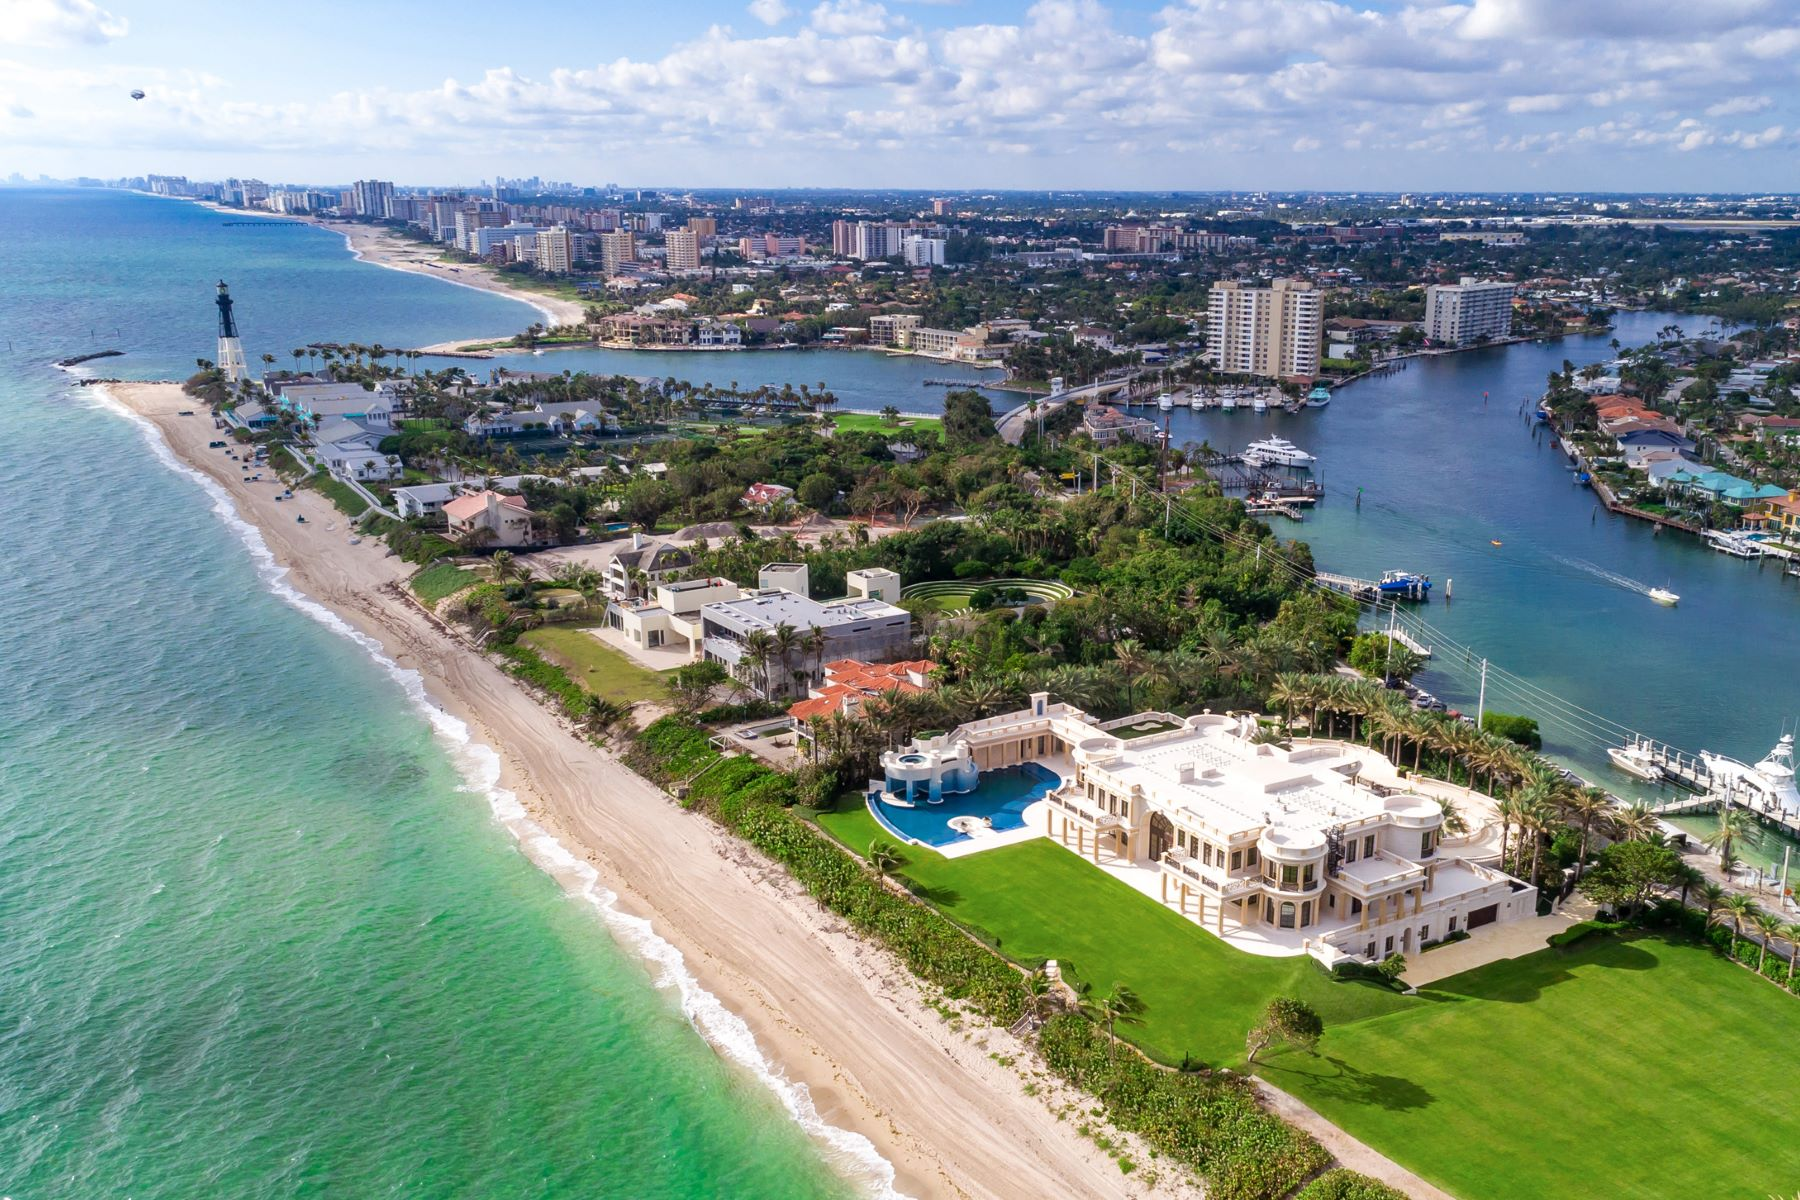 Property for Active at 935 Hillsboro Miles 935 Hillsboro Miles Hillsboro Beach, Florida 33062 United States